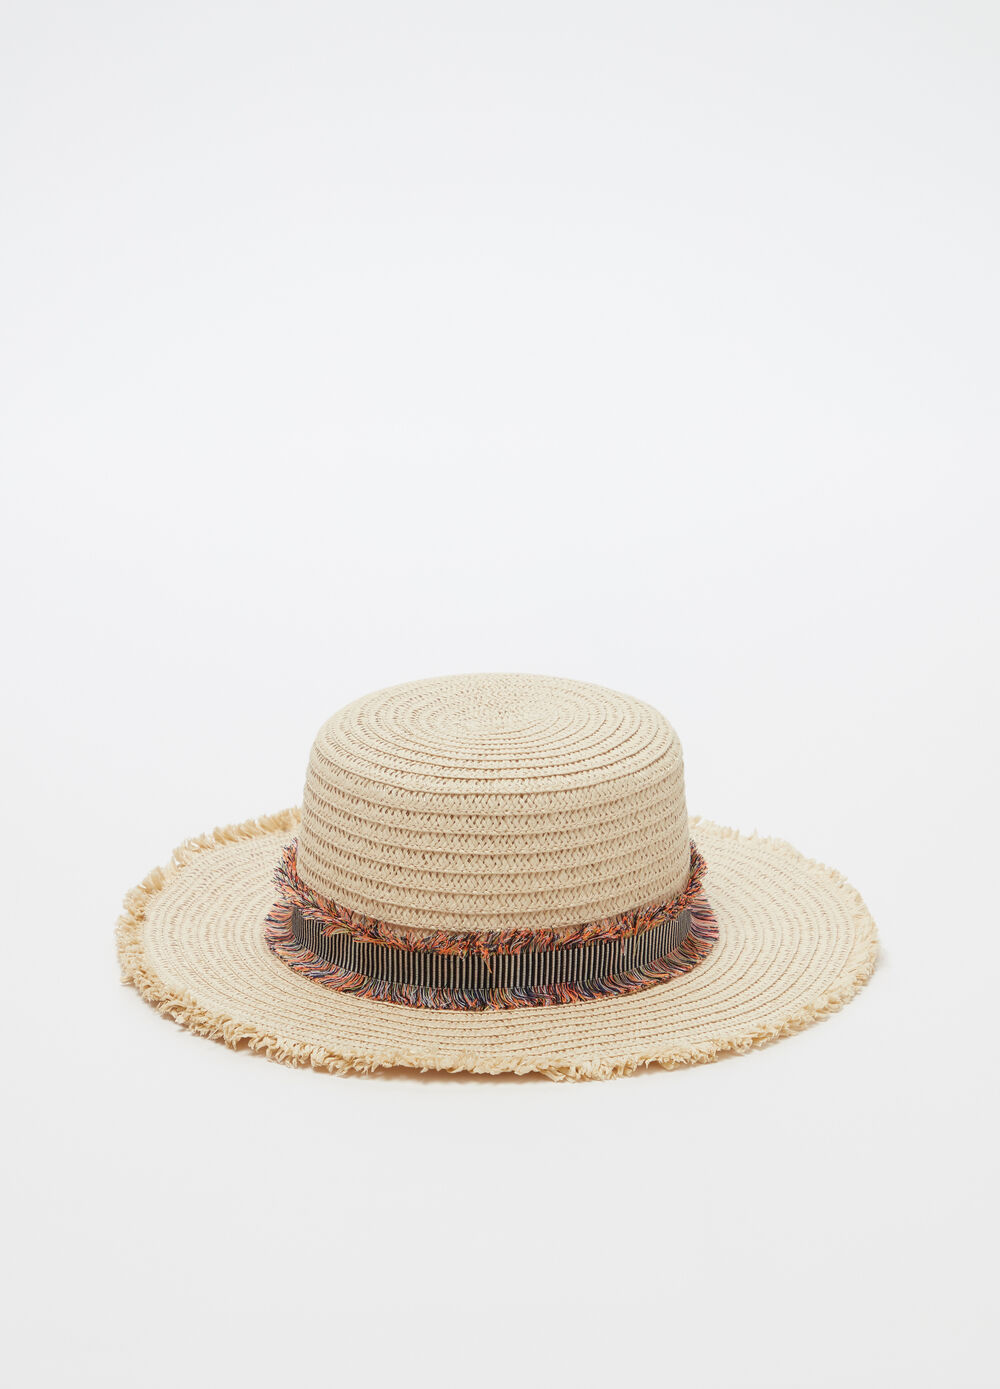 Gondolier-model hat with strap